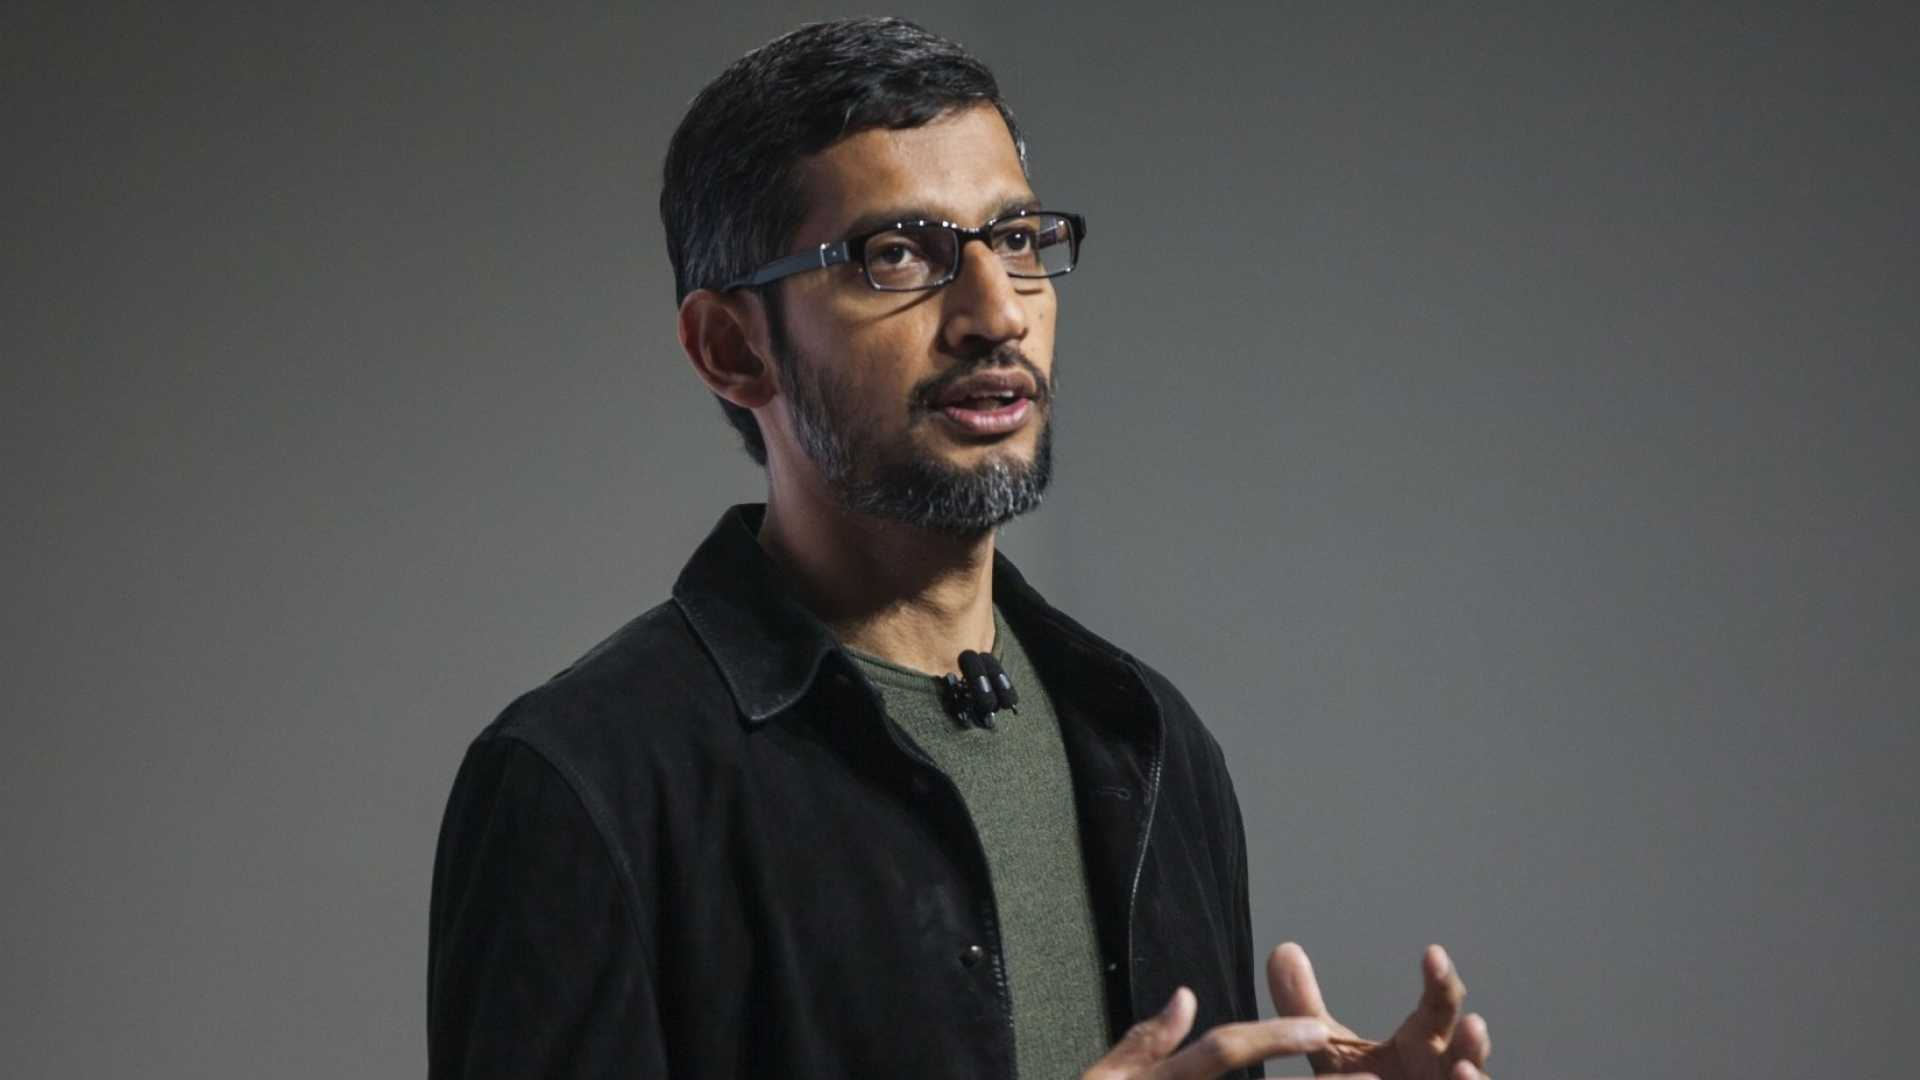 Bad News at Google. Here's How Sundar Pichai Explained It